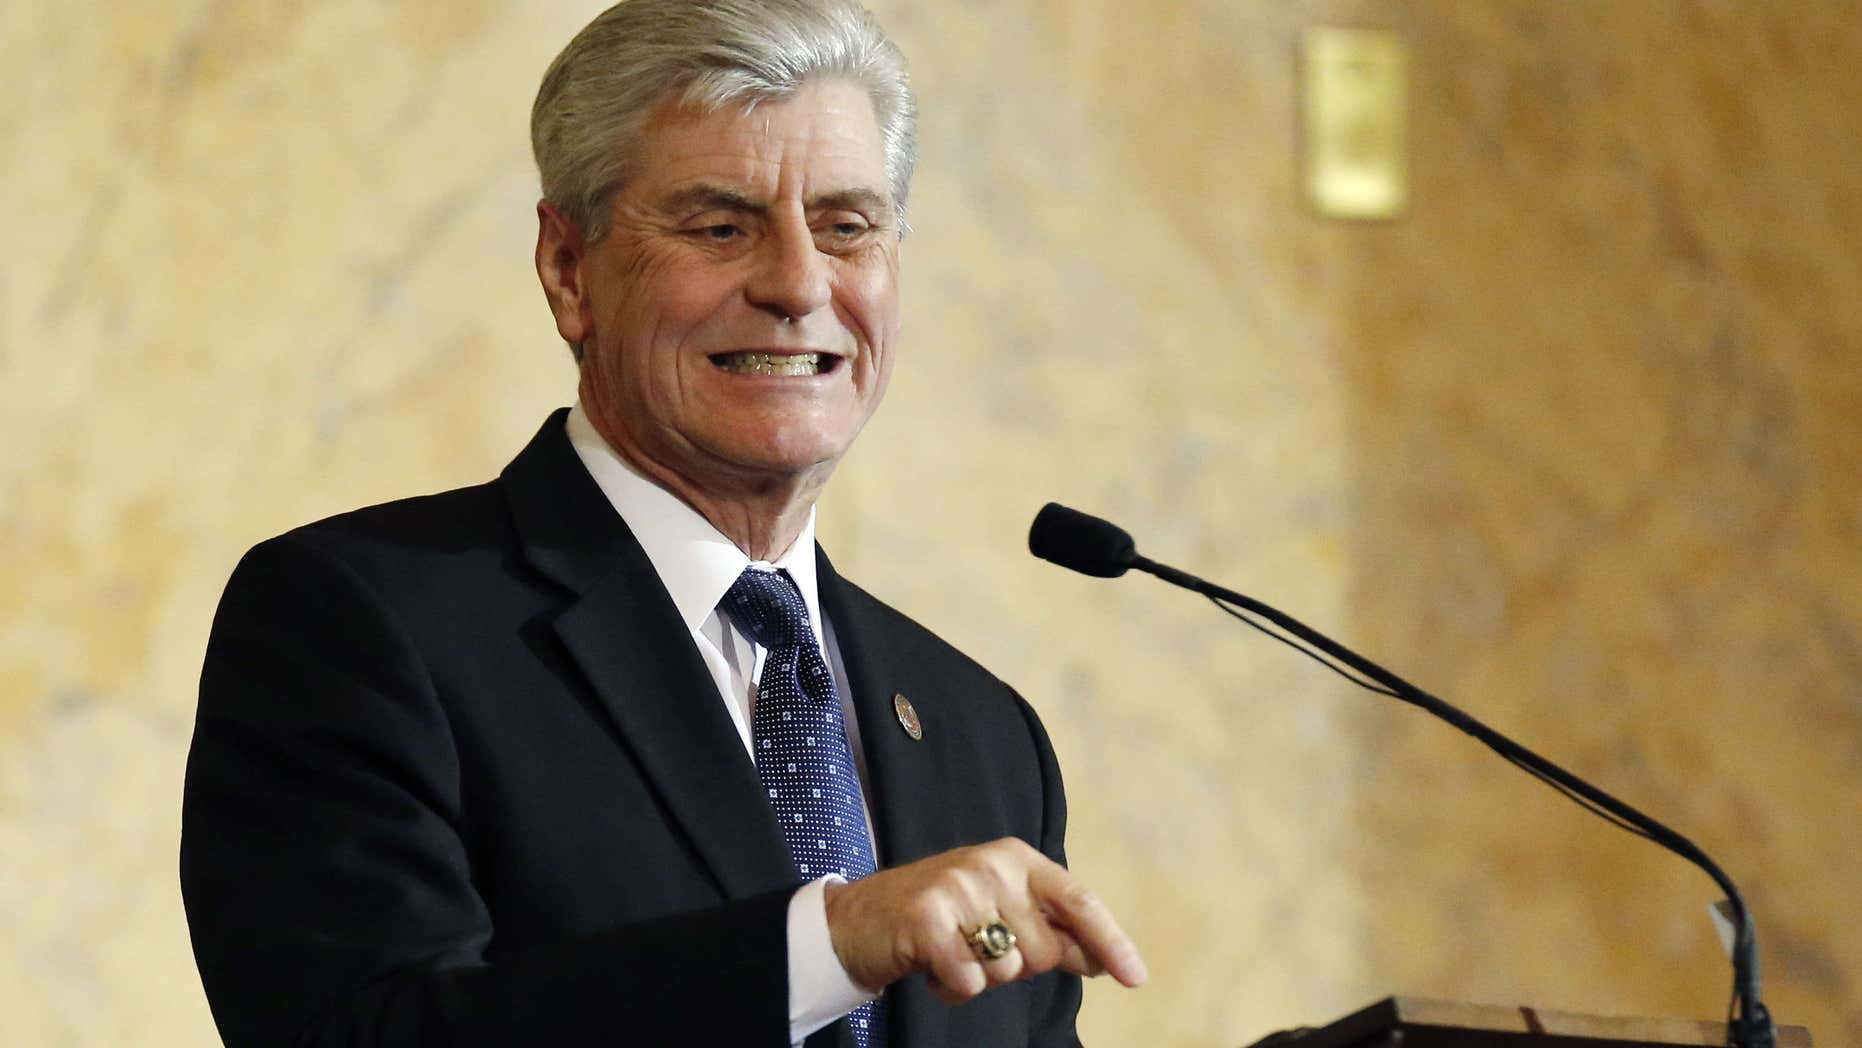 Jan. 26, 2016: Republican Gov. Phil Bryant delivers his State of the State address before a joint legislative session in House chambers at the Capitol in Jackson, Miss.